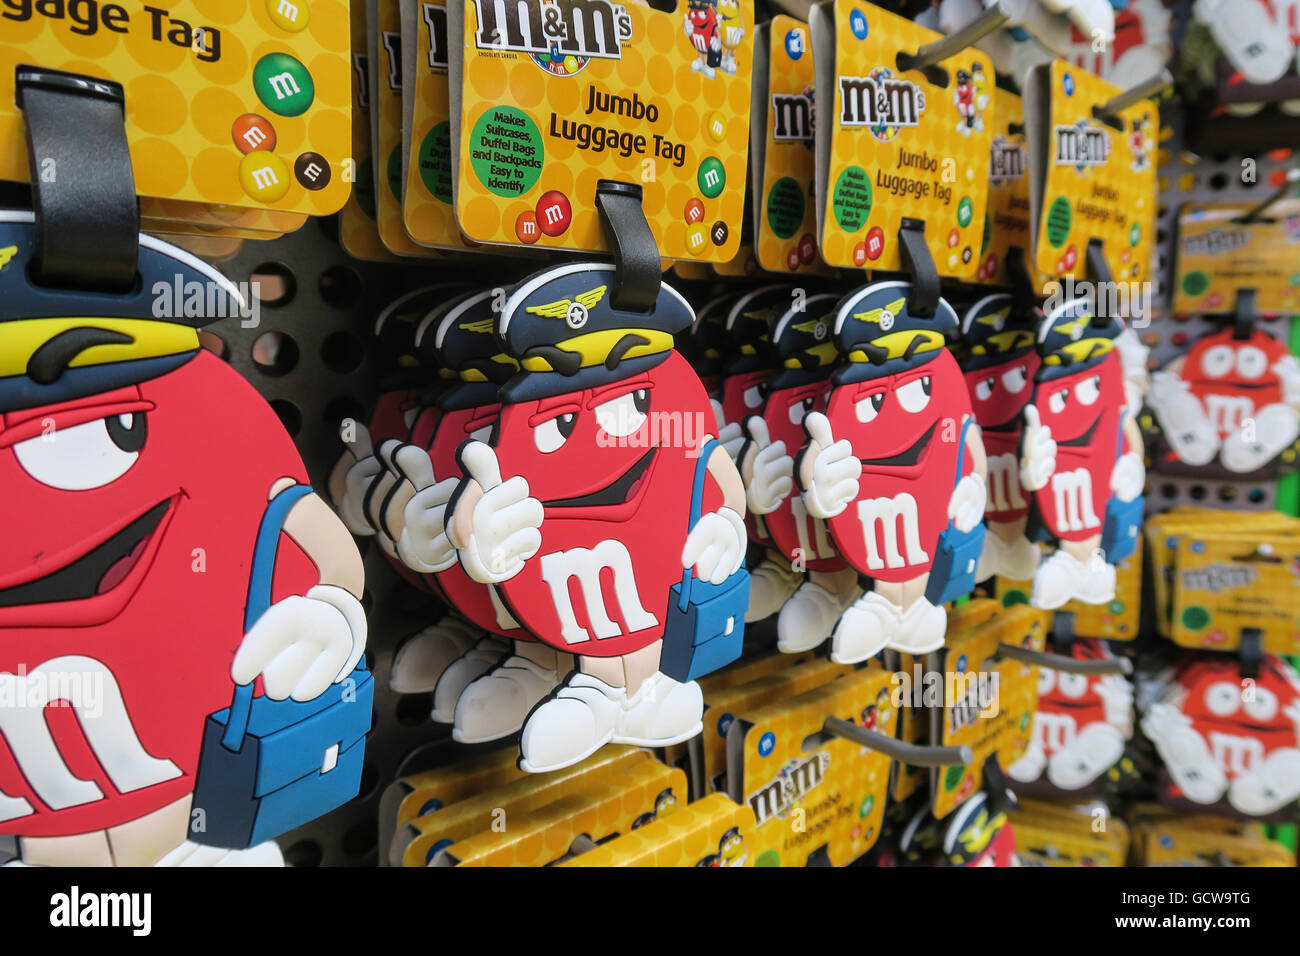 f06bd5a0d8bb Red Pilot M&M Luggage Tag, M&M's World Store, Times Square, NYC ...